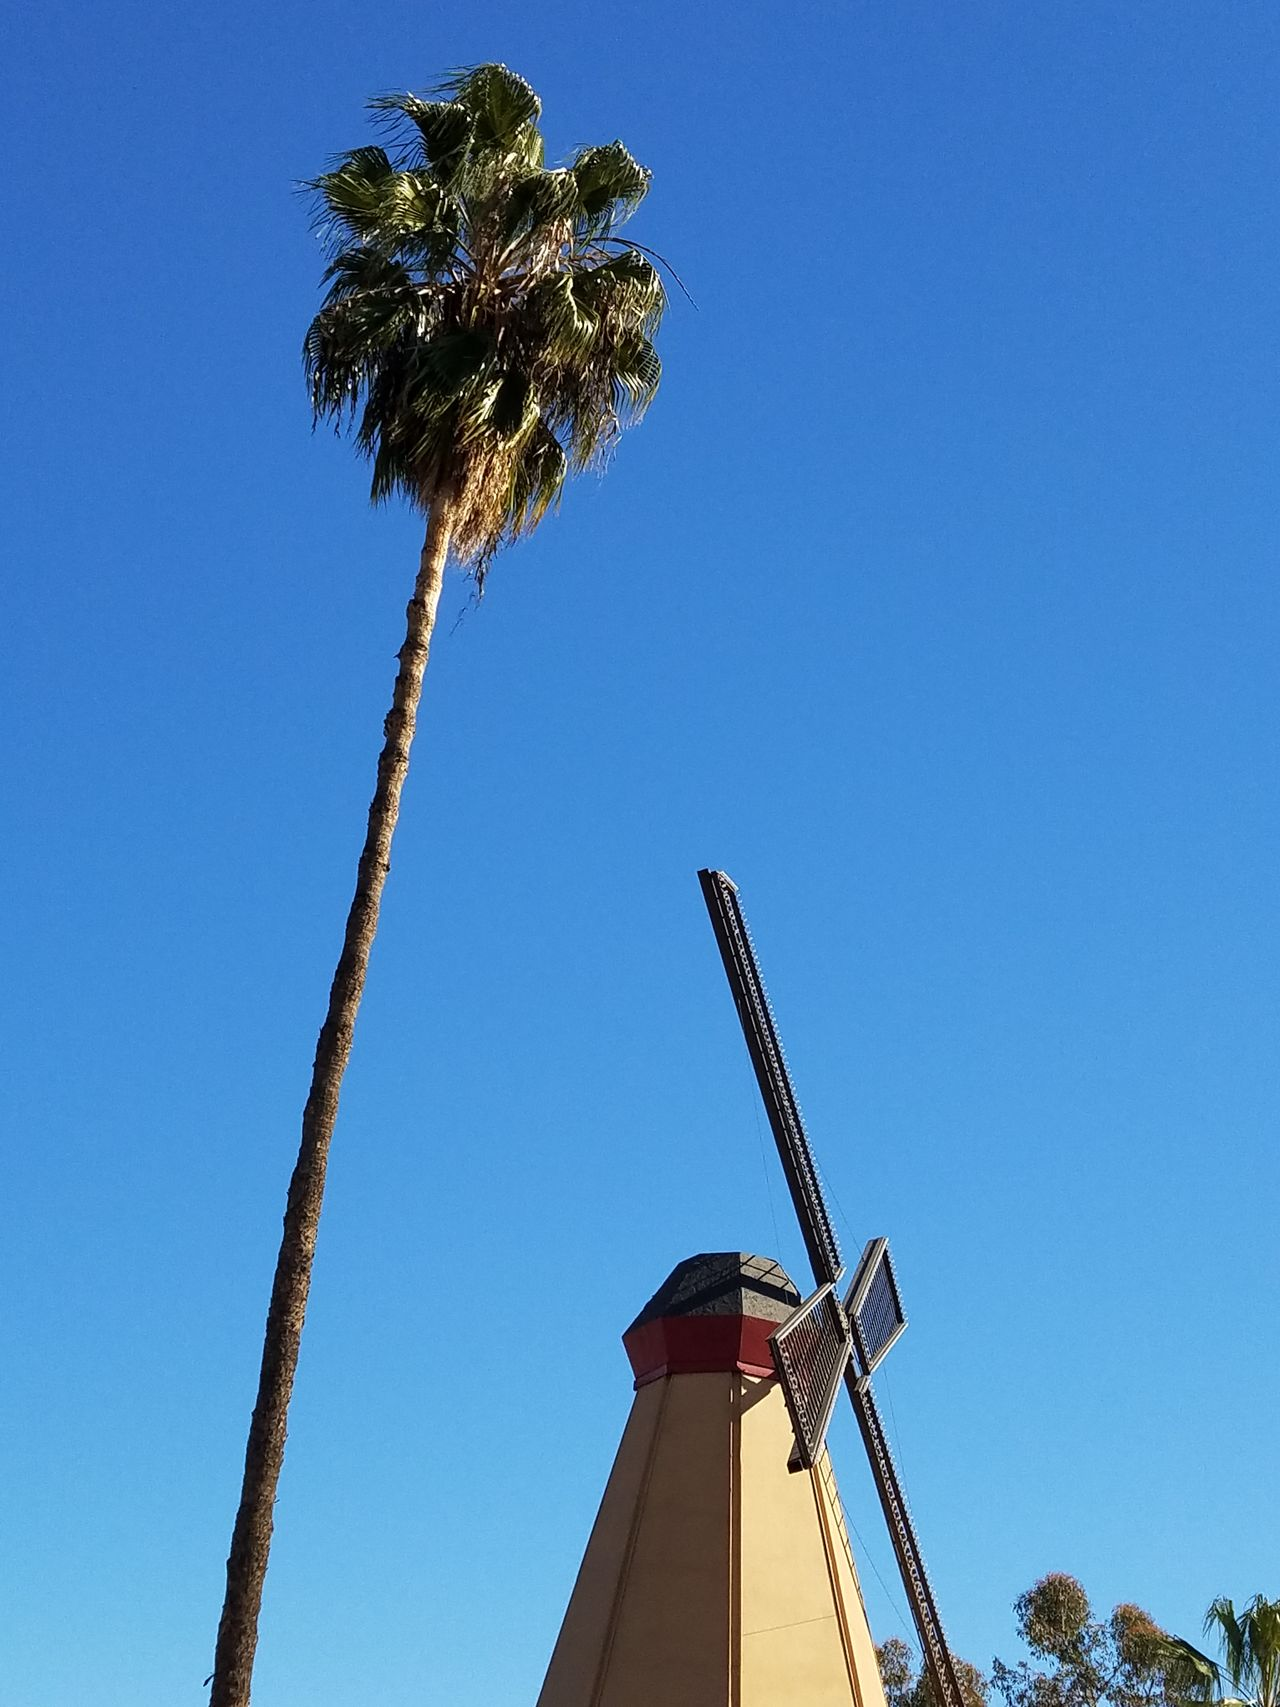 No Edit No Filters Blue Low Angle View Clear Sky Tree City Palm Tree No People Sky Day Outdoors Windmill Fine Art Photograhy Adapted To The City With Land Rover Copy Space Pattern, Texture, Shape And Form Backgrounds Street Photography Shadow And Light Nature Simplicity Still Life Photography Motion Minimalism Driving By And Captured Out Window